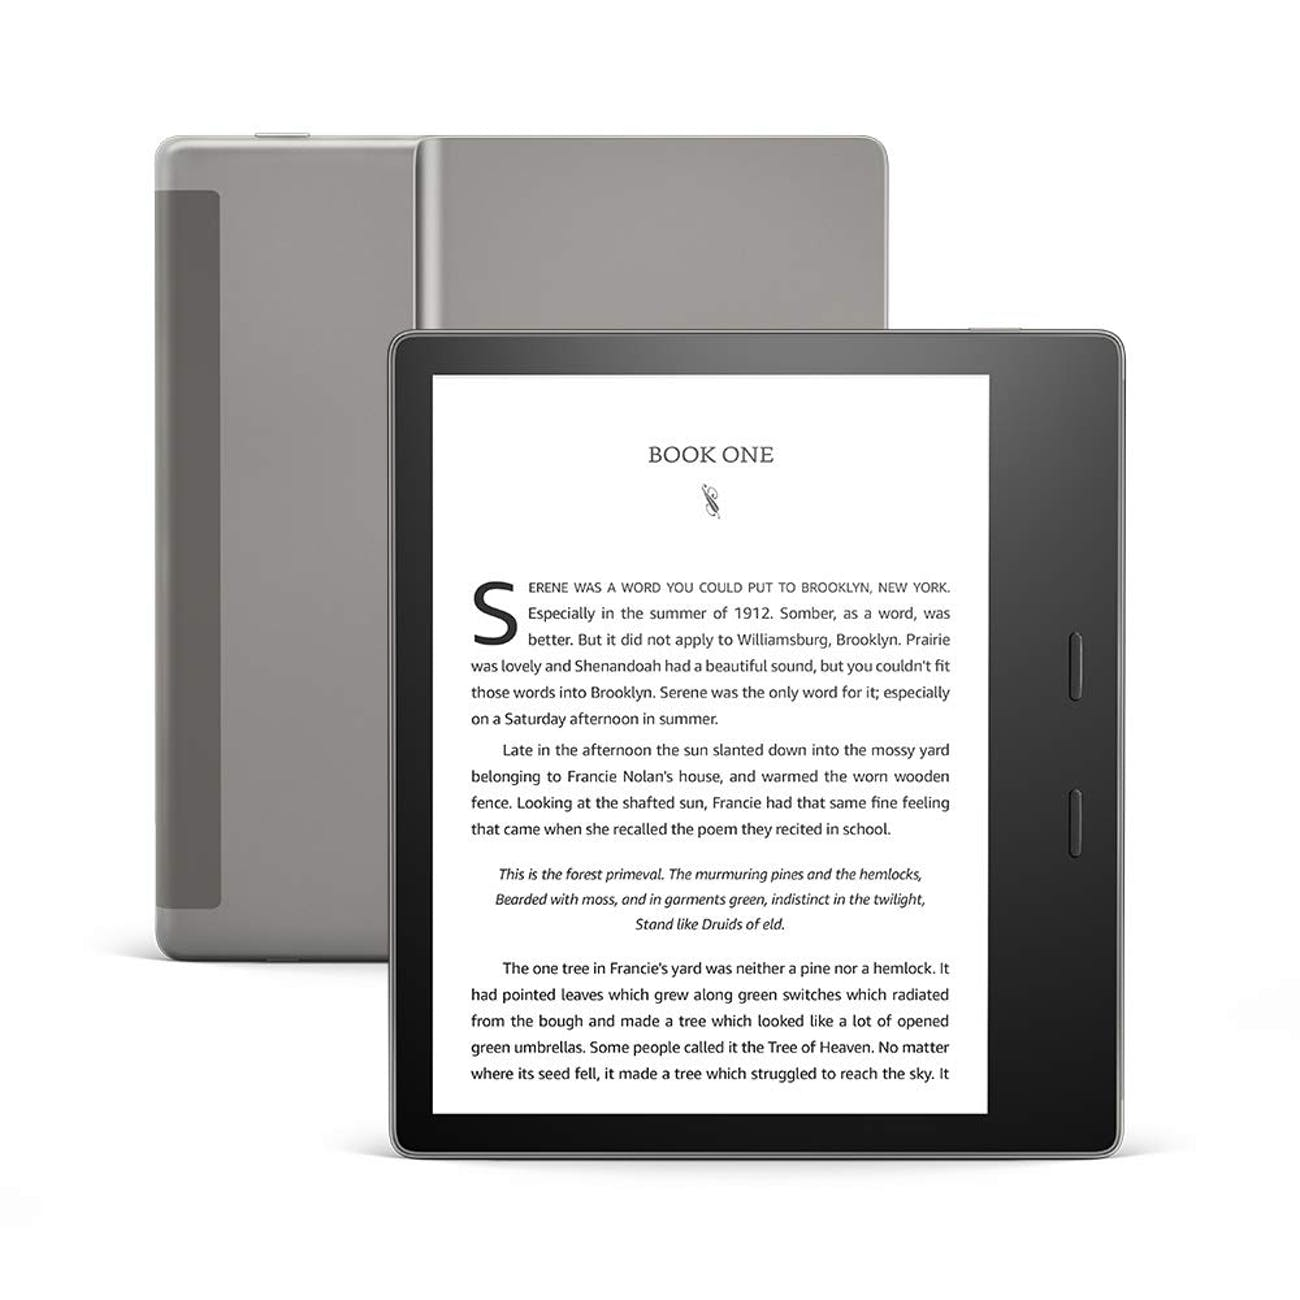 All-new Kindle Oasis - Now with adjustable warm light - Includes special offers, e-reader, e-ink display, books, e-books